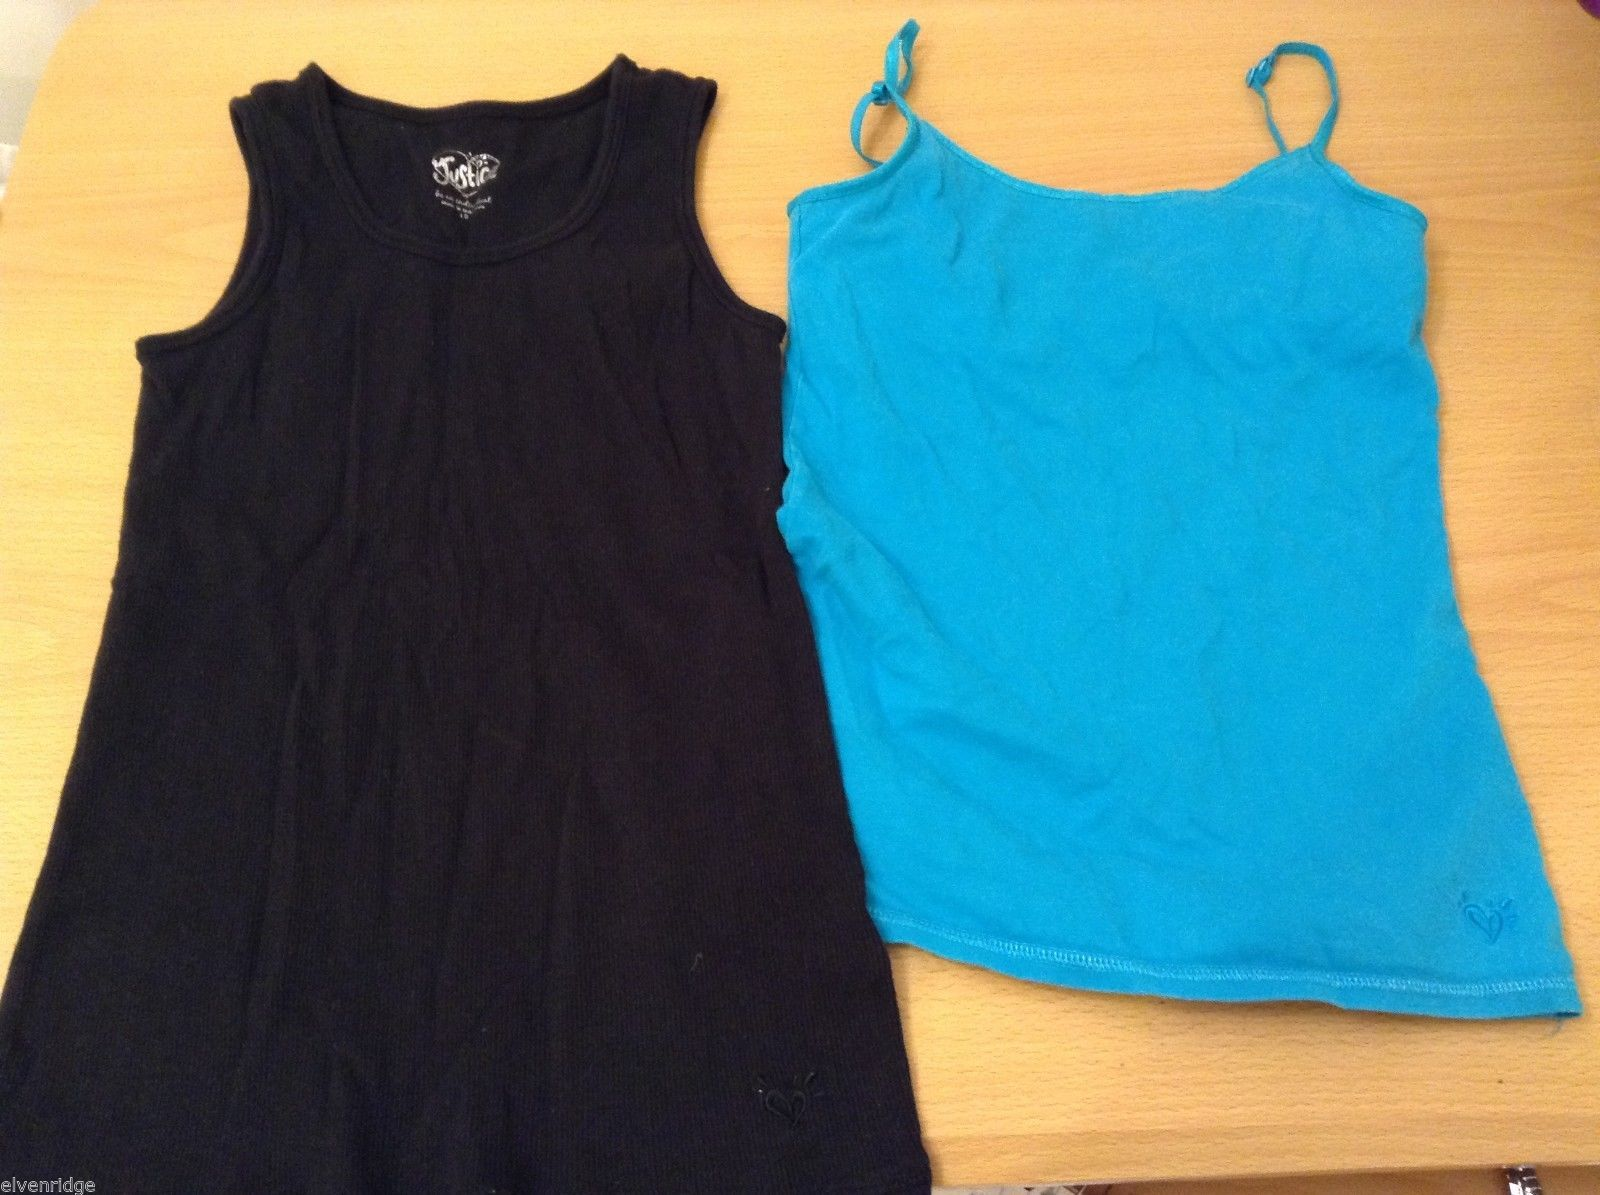 Lot of 2 Girls Justice Tank Tops Black and Turquoise Blue Size 10 and 12